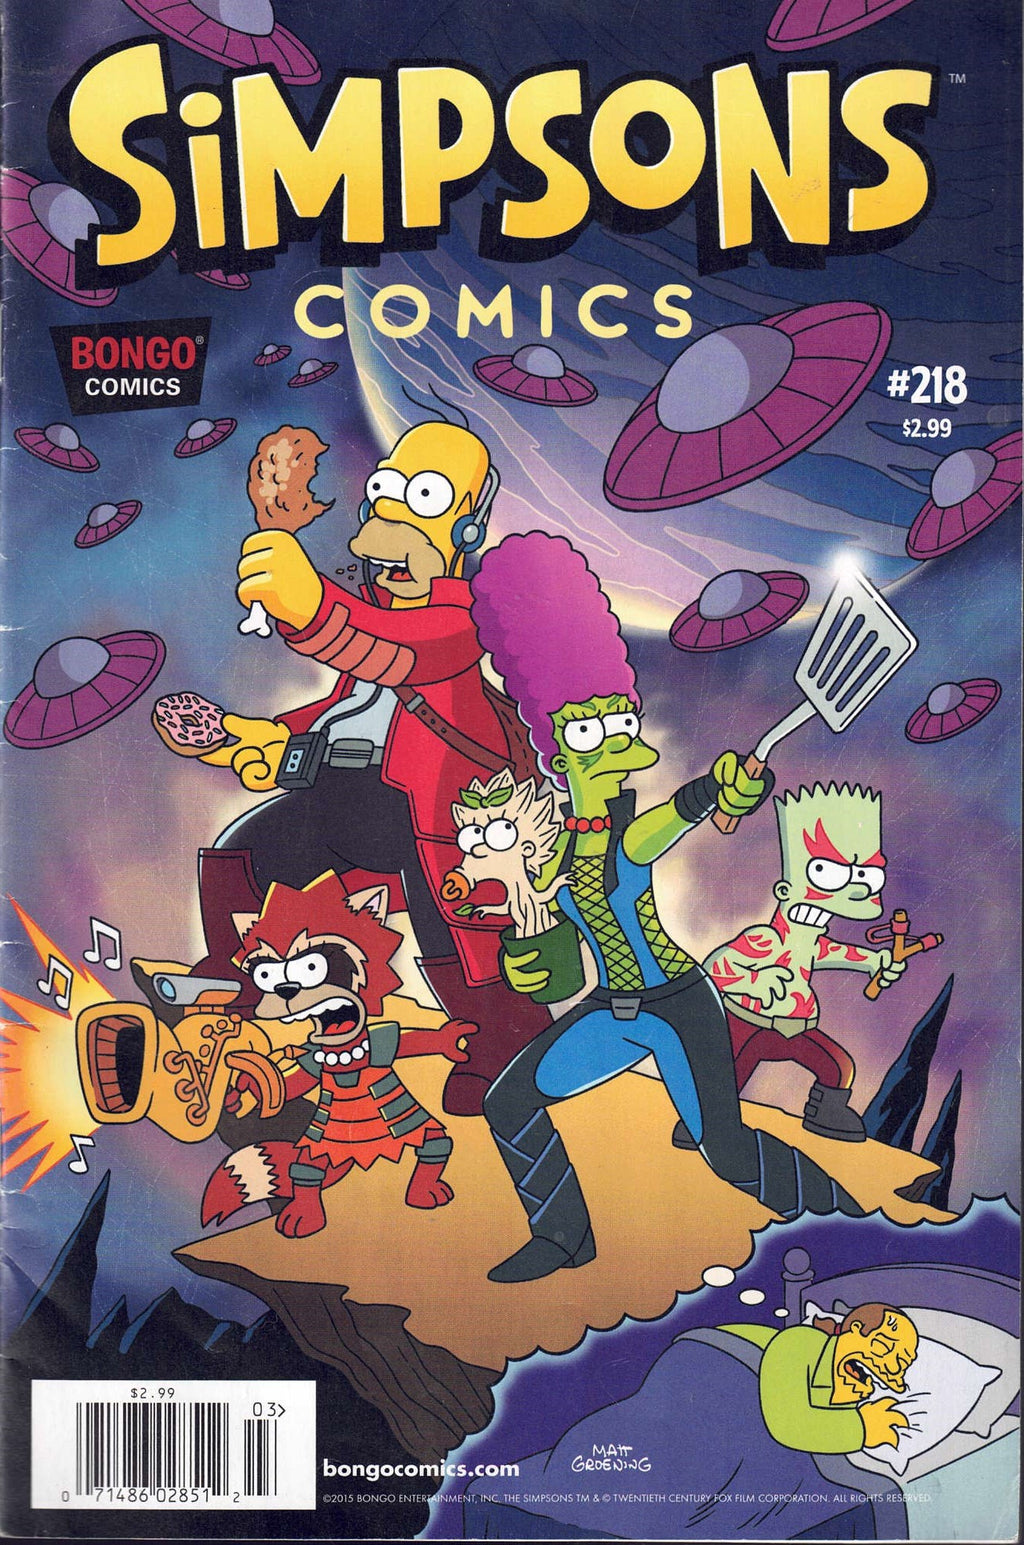 SIMPSONS COMICS #218 GUARDIANS OF THE GALAXY PARODY - Busy Bee Emporium